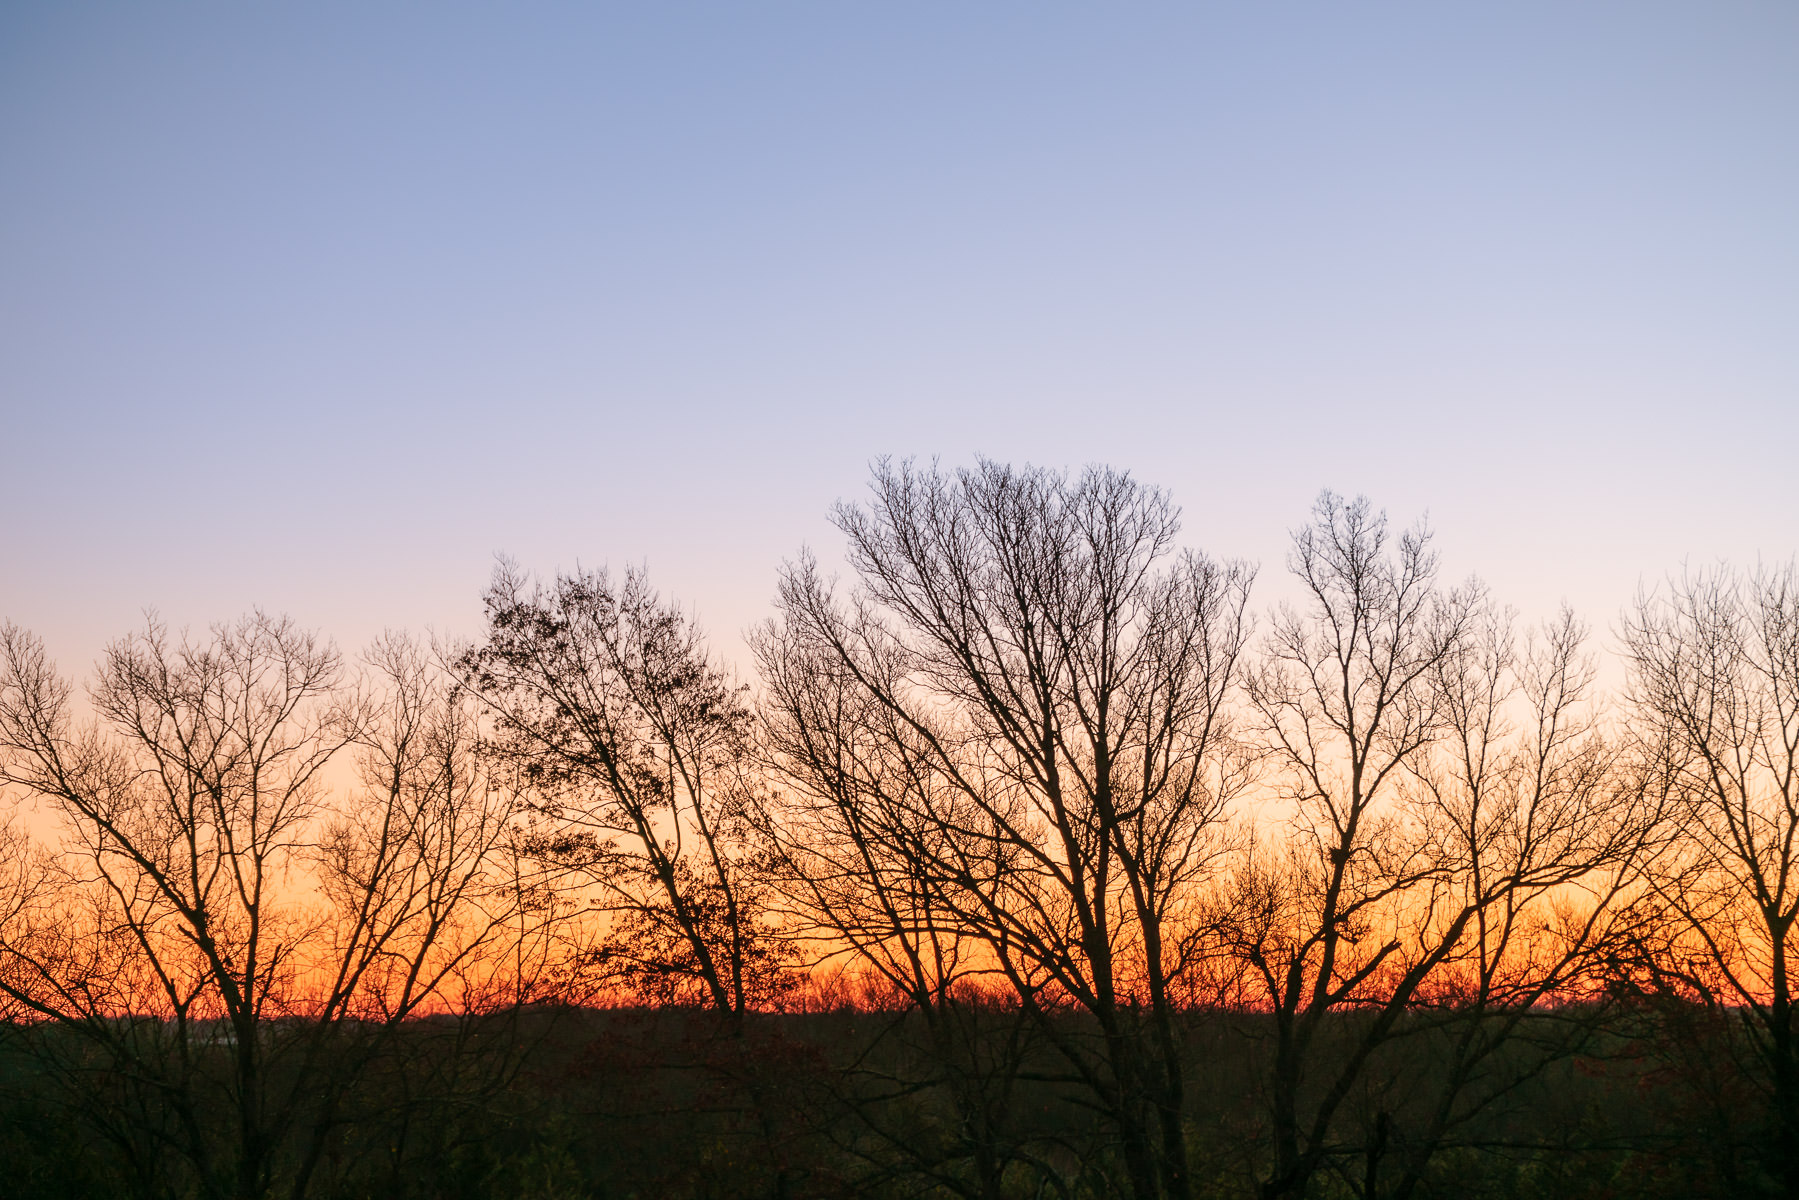 The sun rises on a tree-topped ridge near McKinney, Texas.